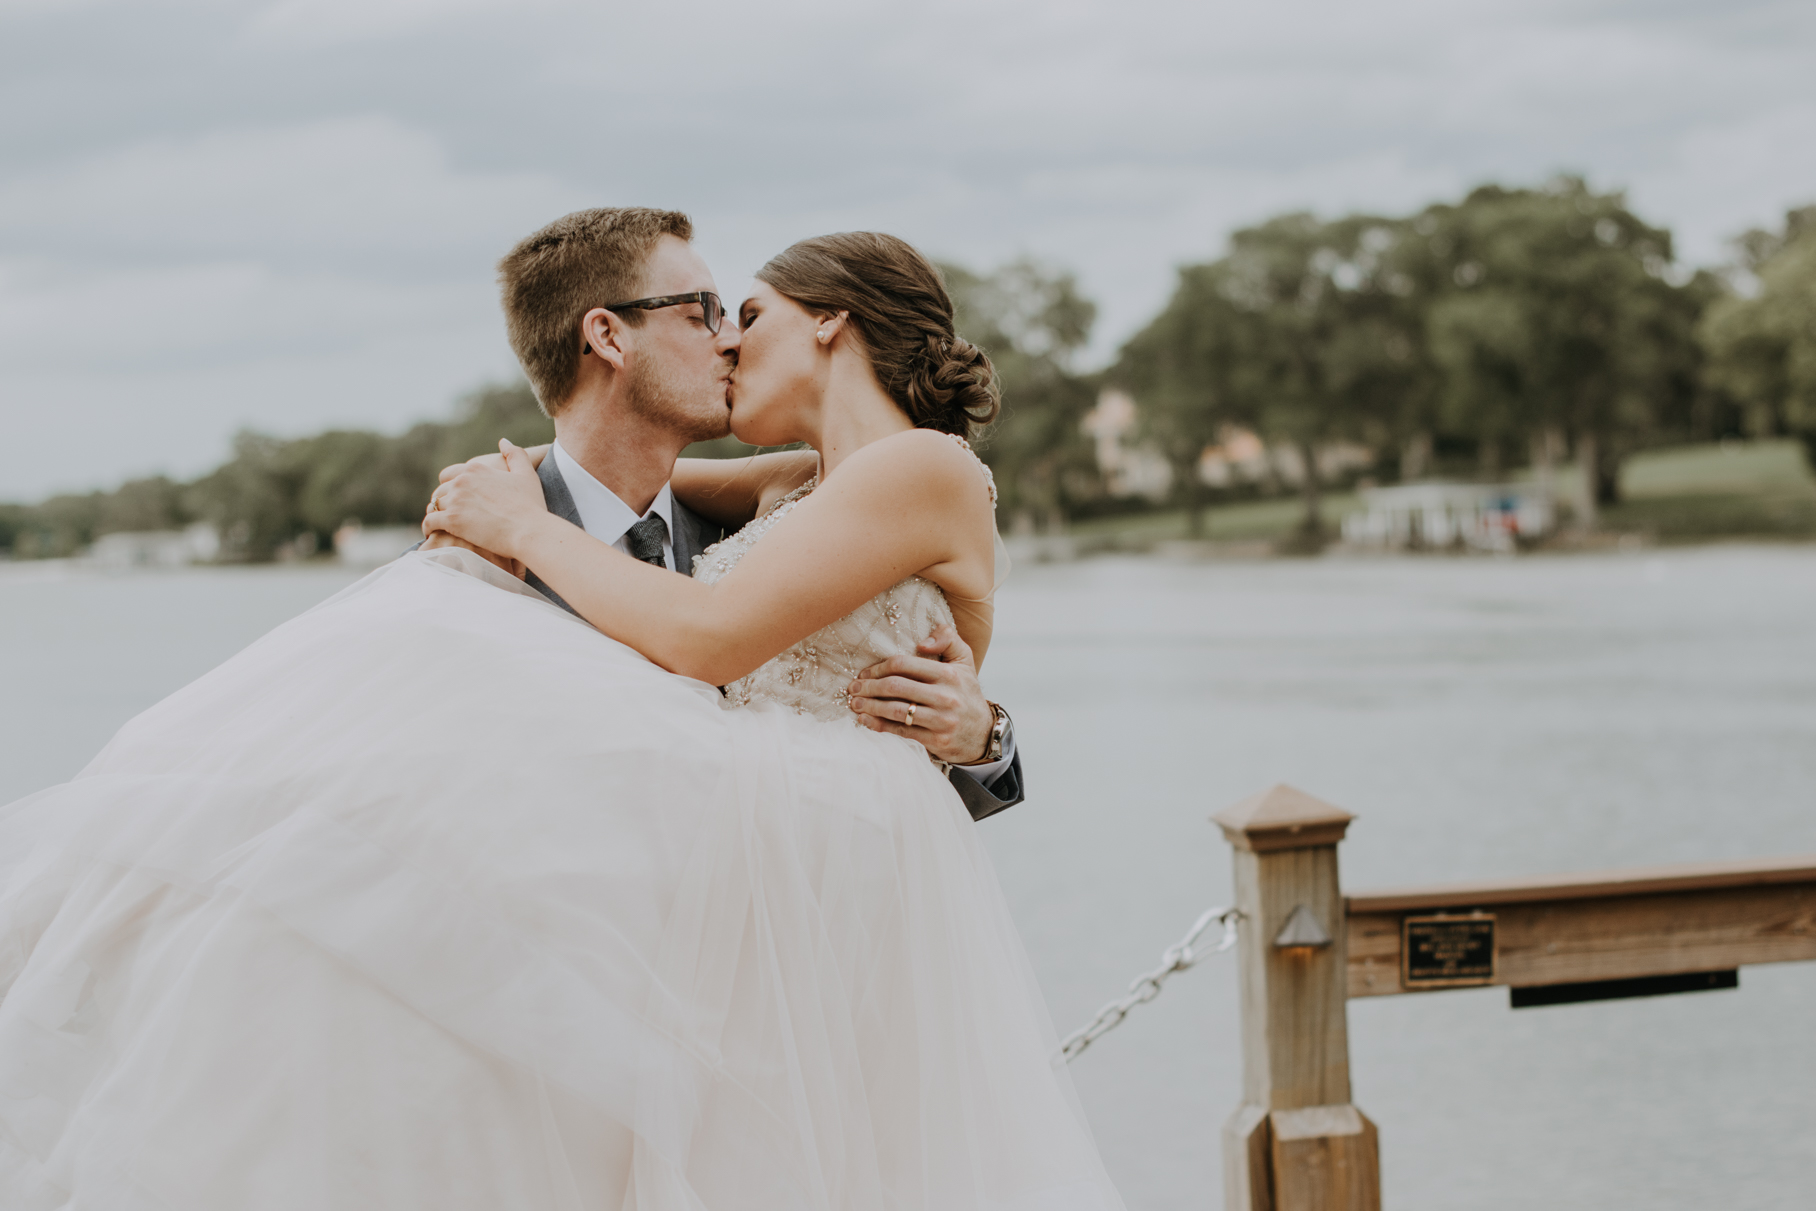 freehearted film co | tampa wedding photo and film | winter park wedding